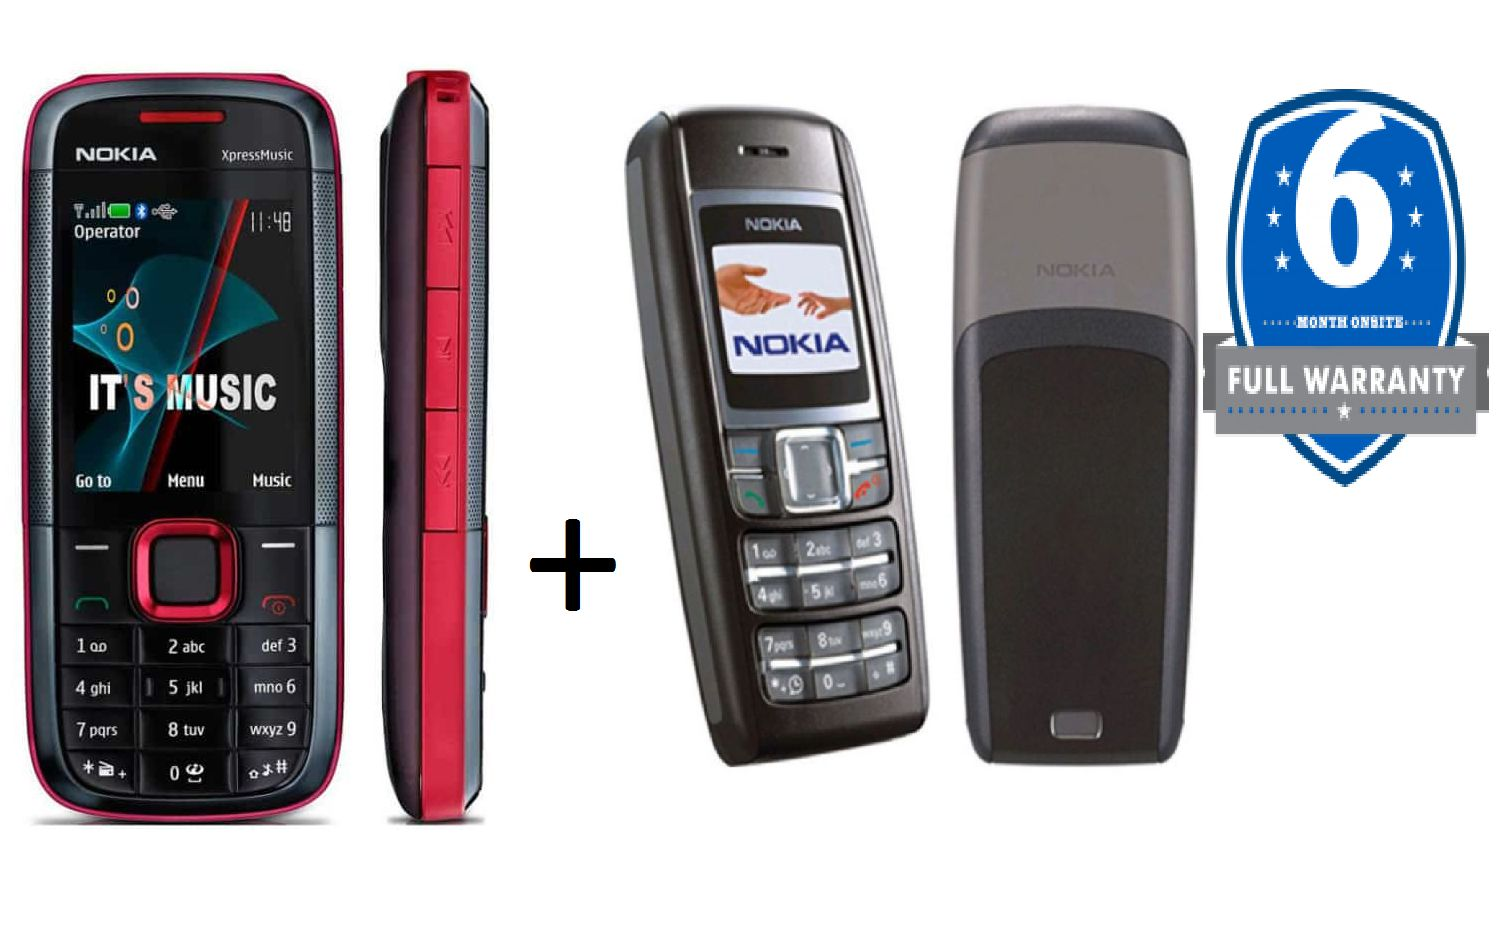 Camolinz Buy Nokia 1600 Get Nokia 5130 Black - Feature Phone